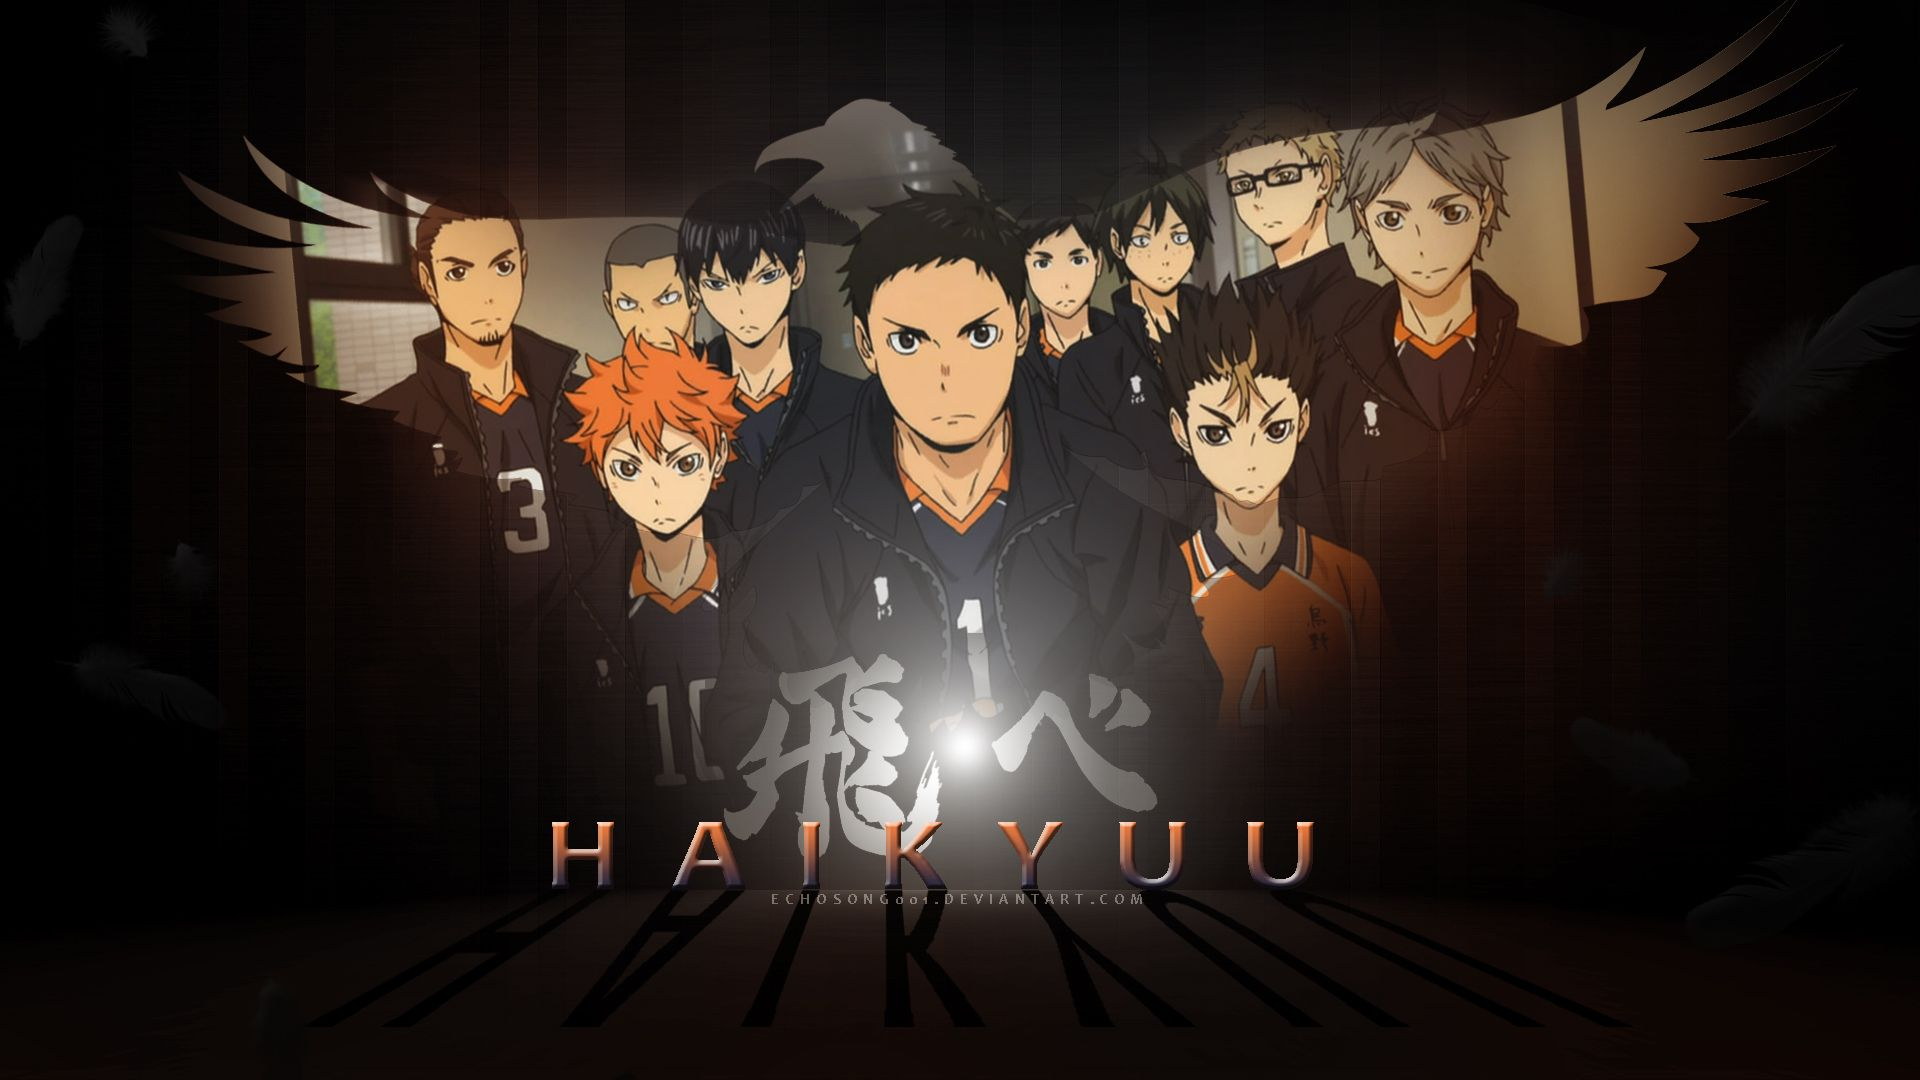 Haikyuu Wallpaper 1920x1080 Anime Wallpaper Anime Wallpaper Iphone Haikyuu Wallpaper